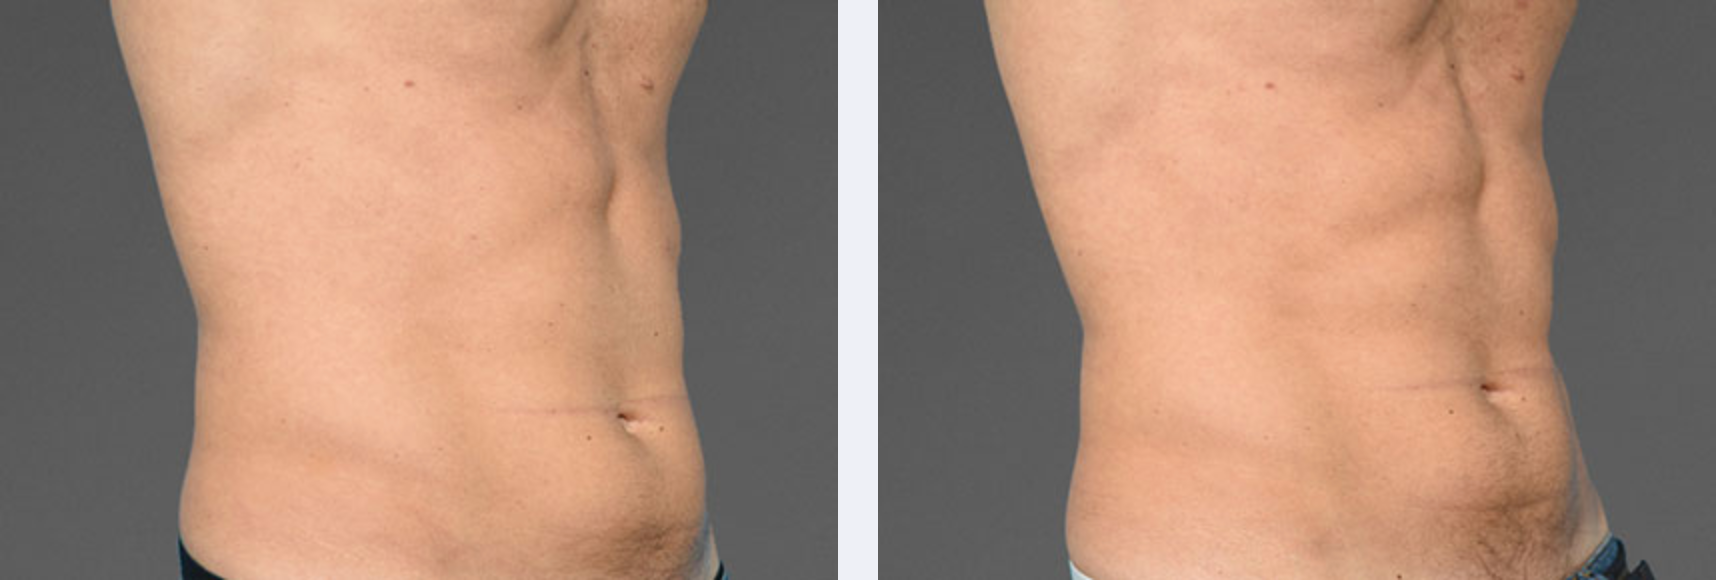 Image showing toned abdomen area after 4-6 weeks using cooltone for body toning, New York City, NY